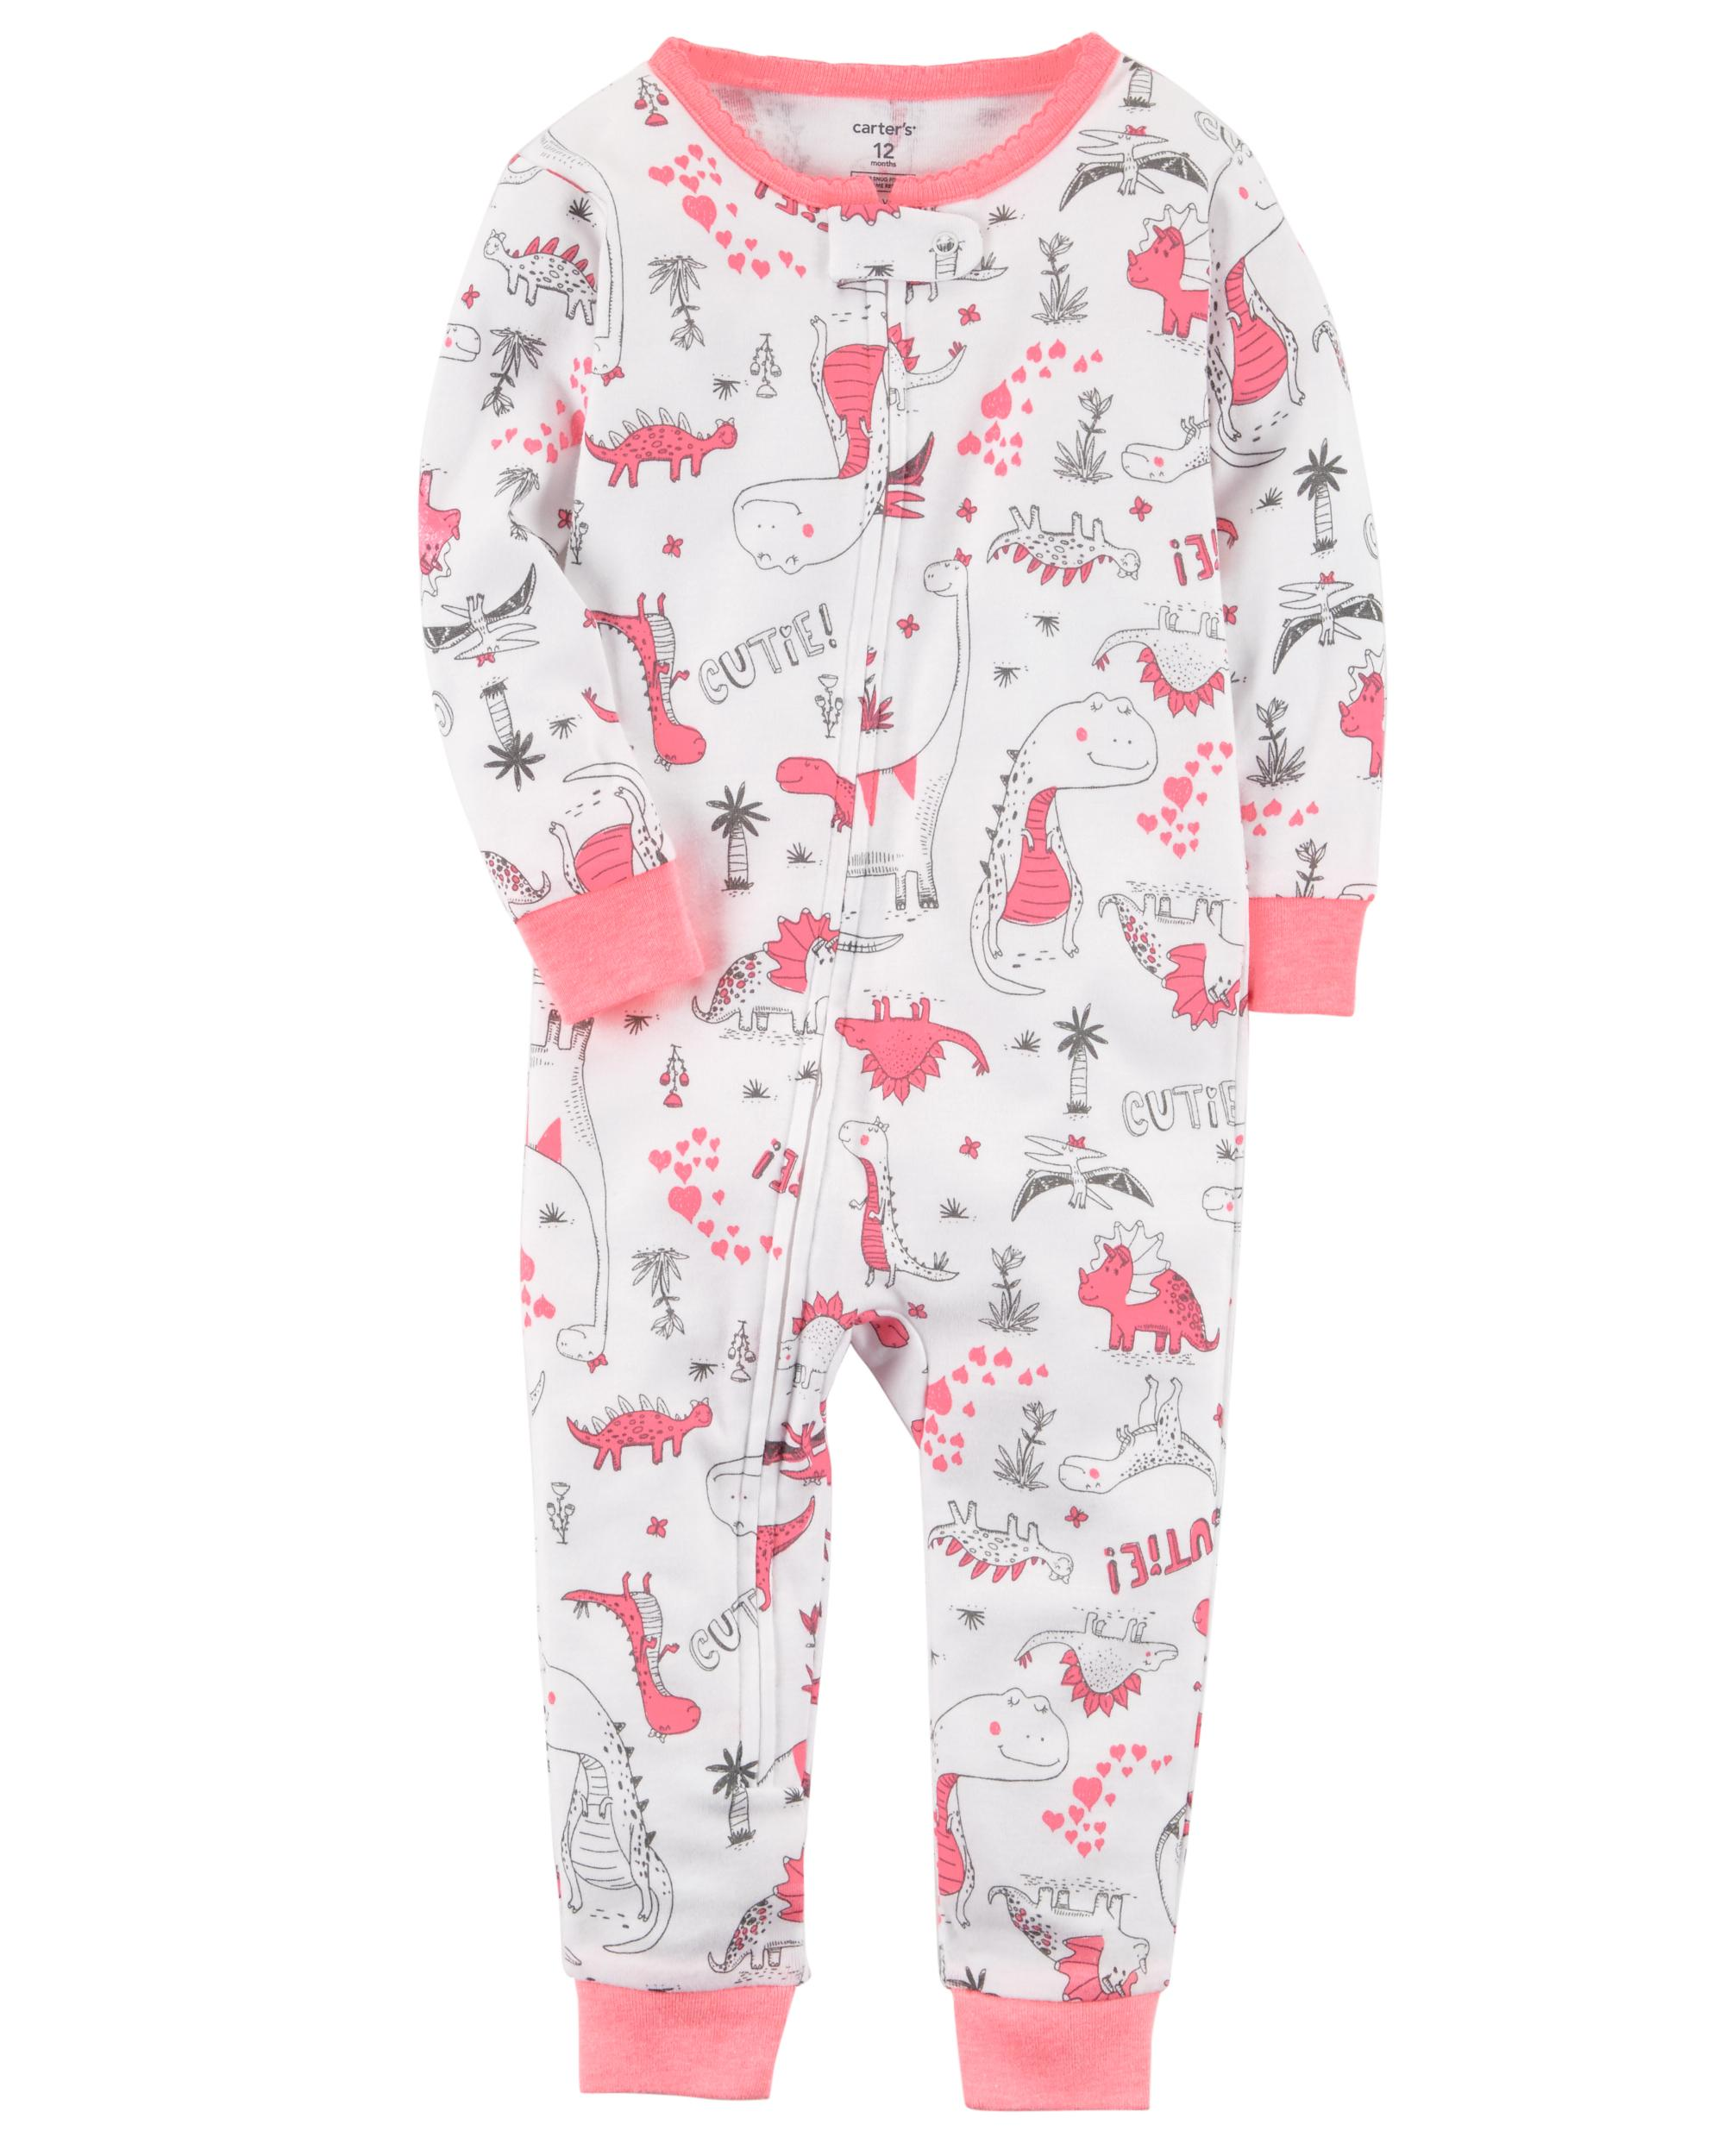 One-Piece Pajama Carter/'s Toddler Girls Cotton Footless Dinosaur Sleeper